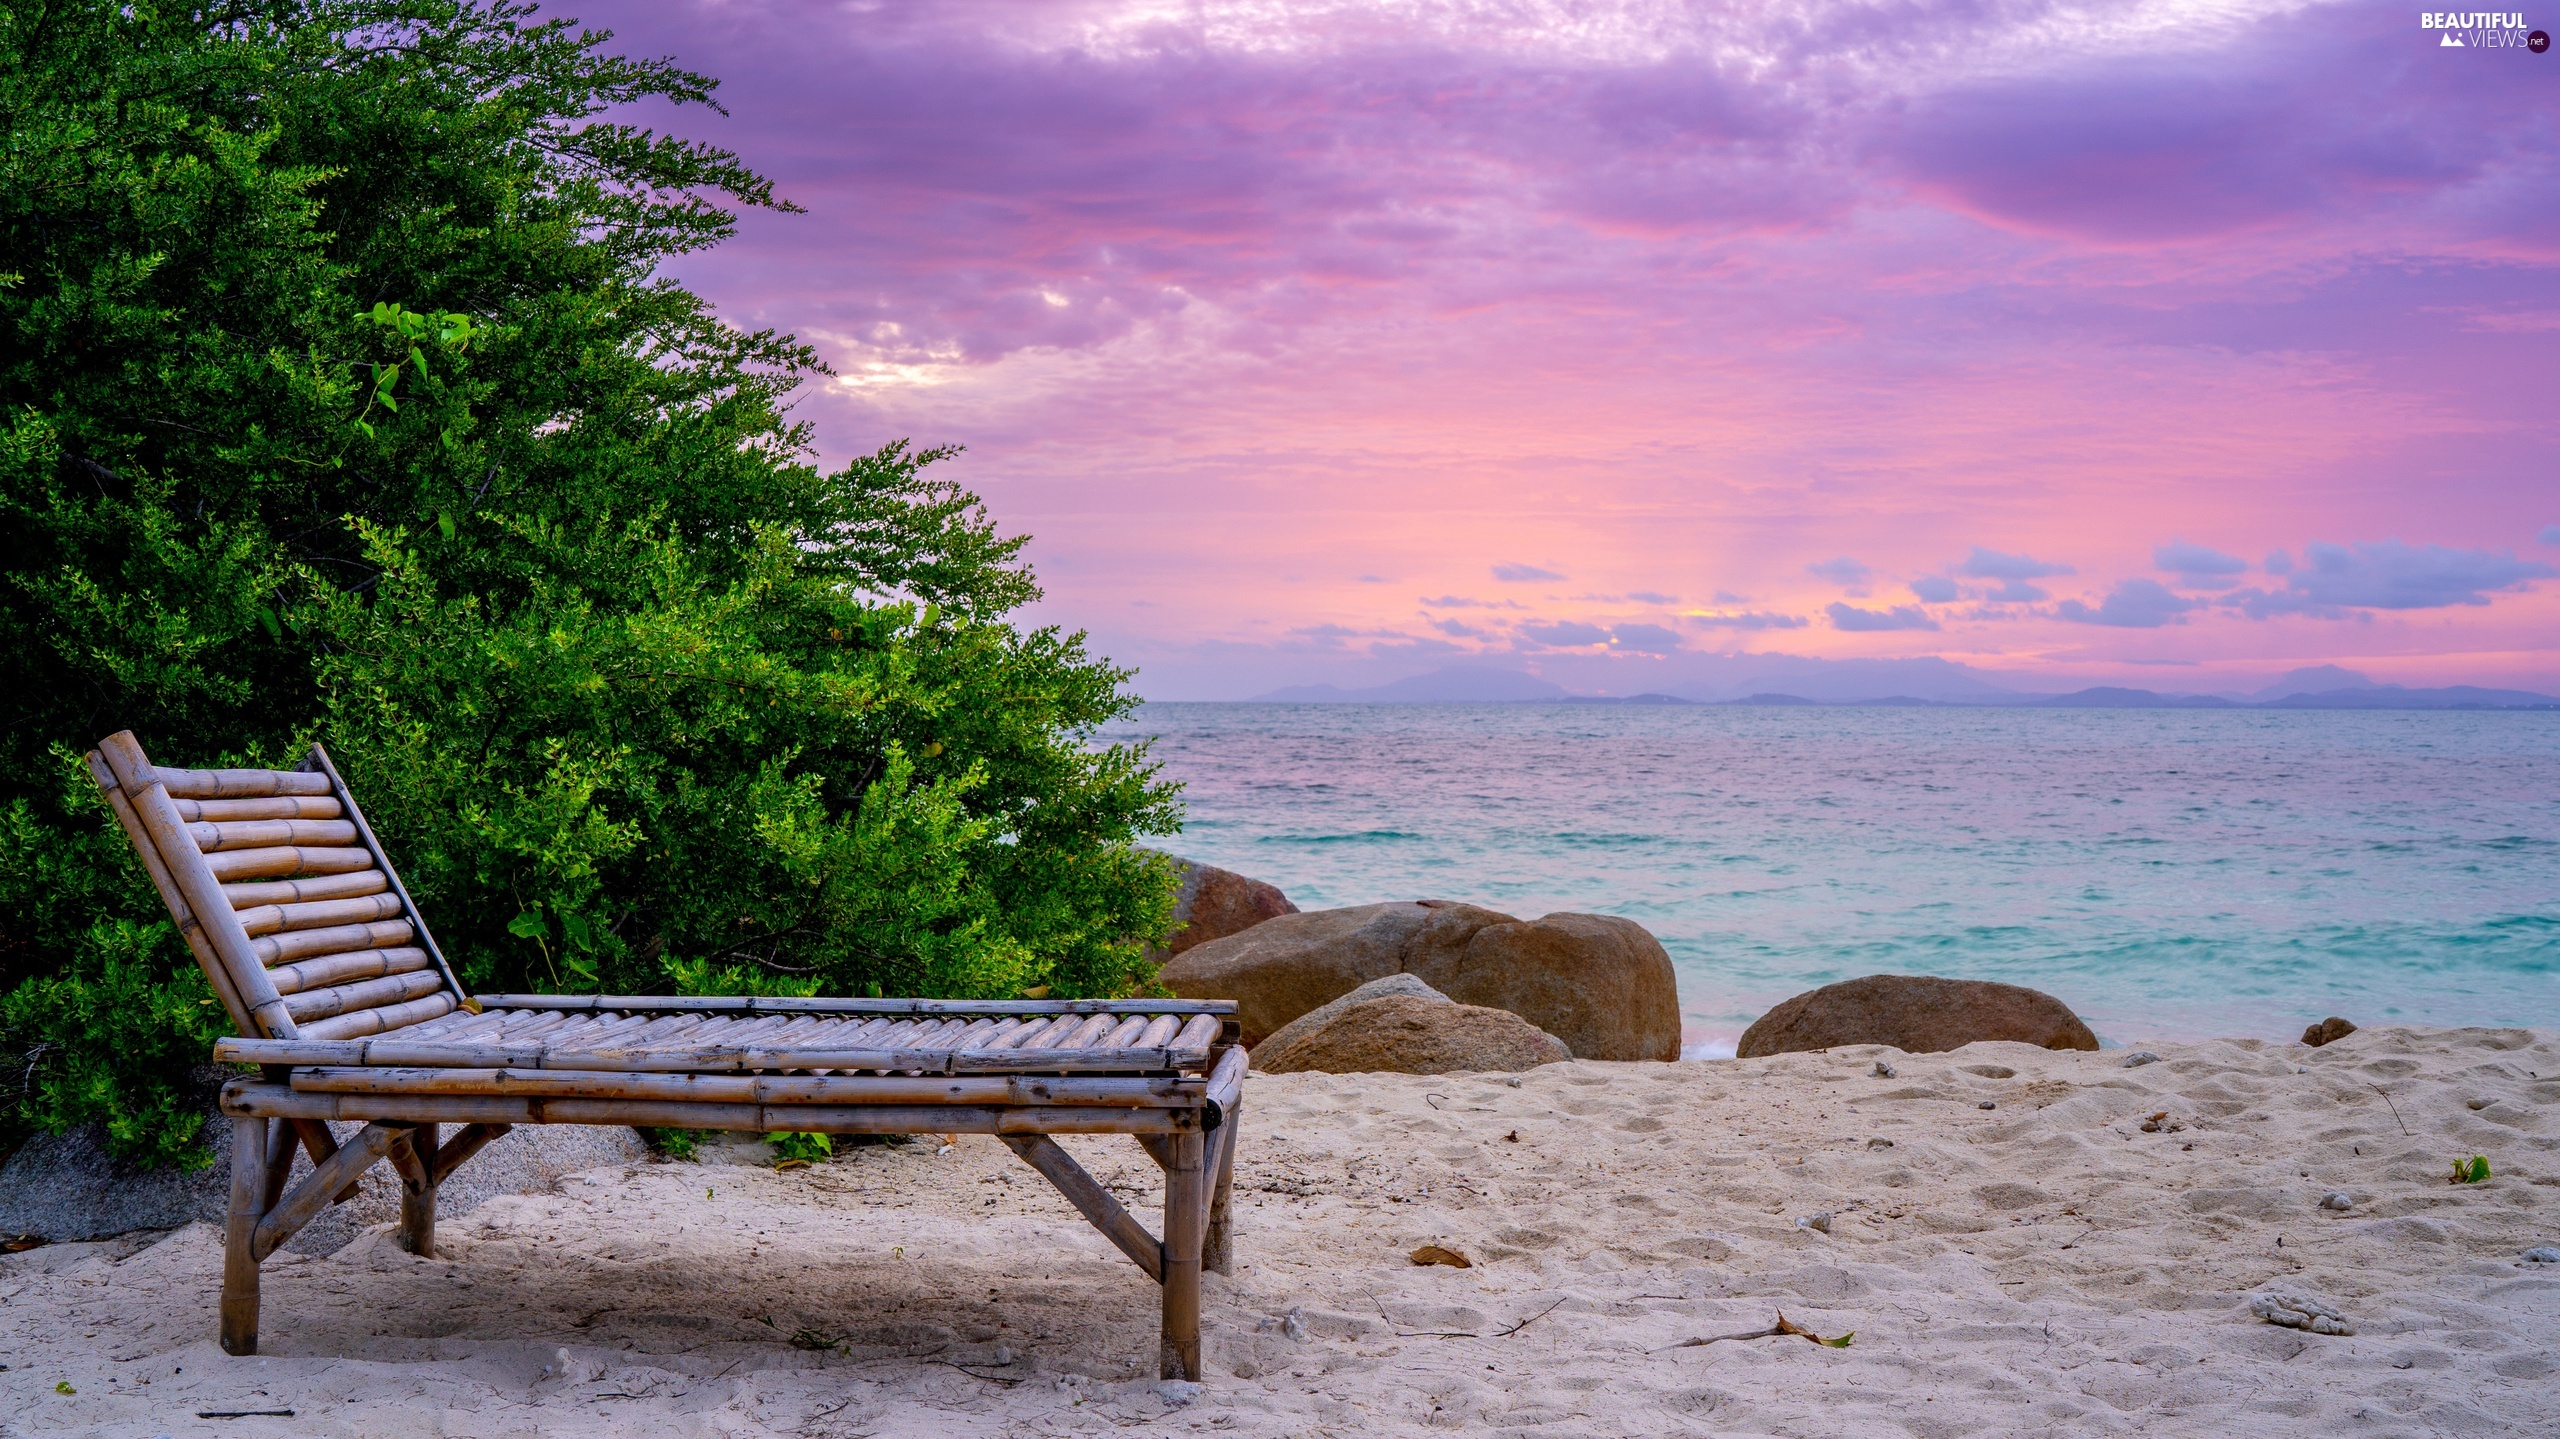 hammock chair, sea, Stones, Sunrise, Bush, Beaches